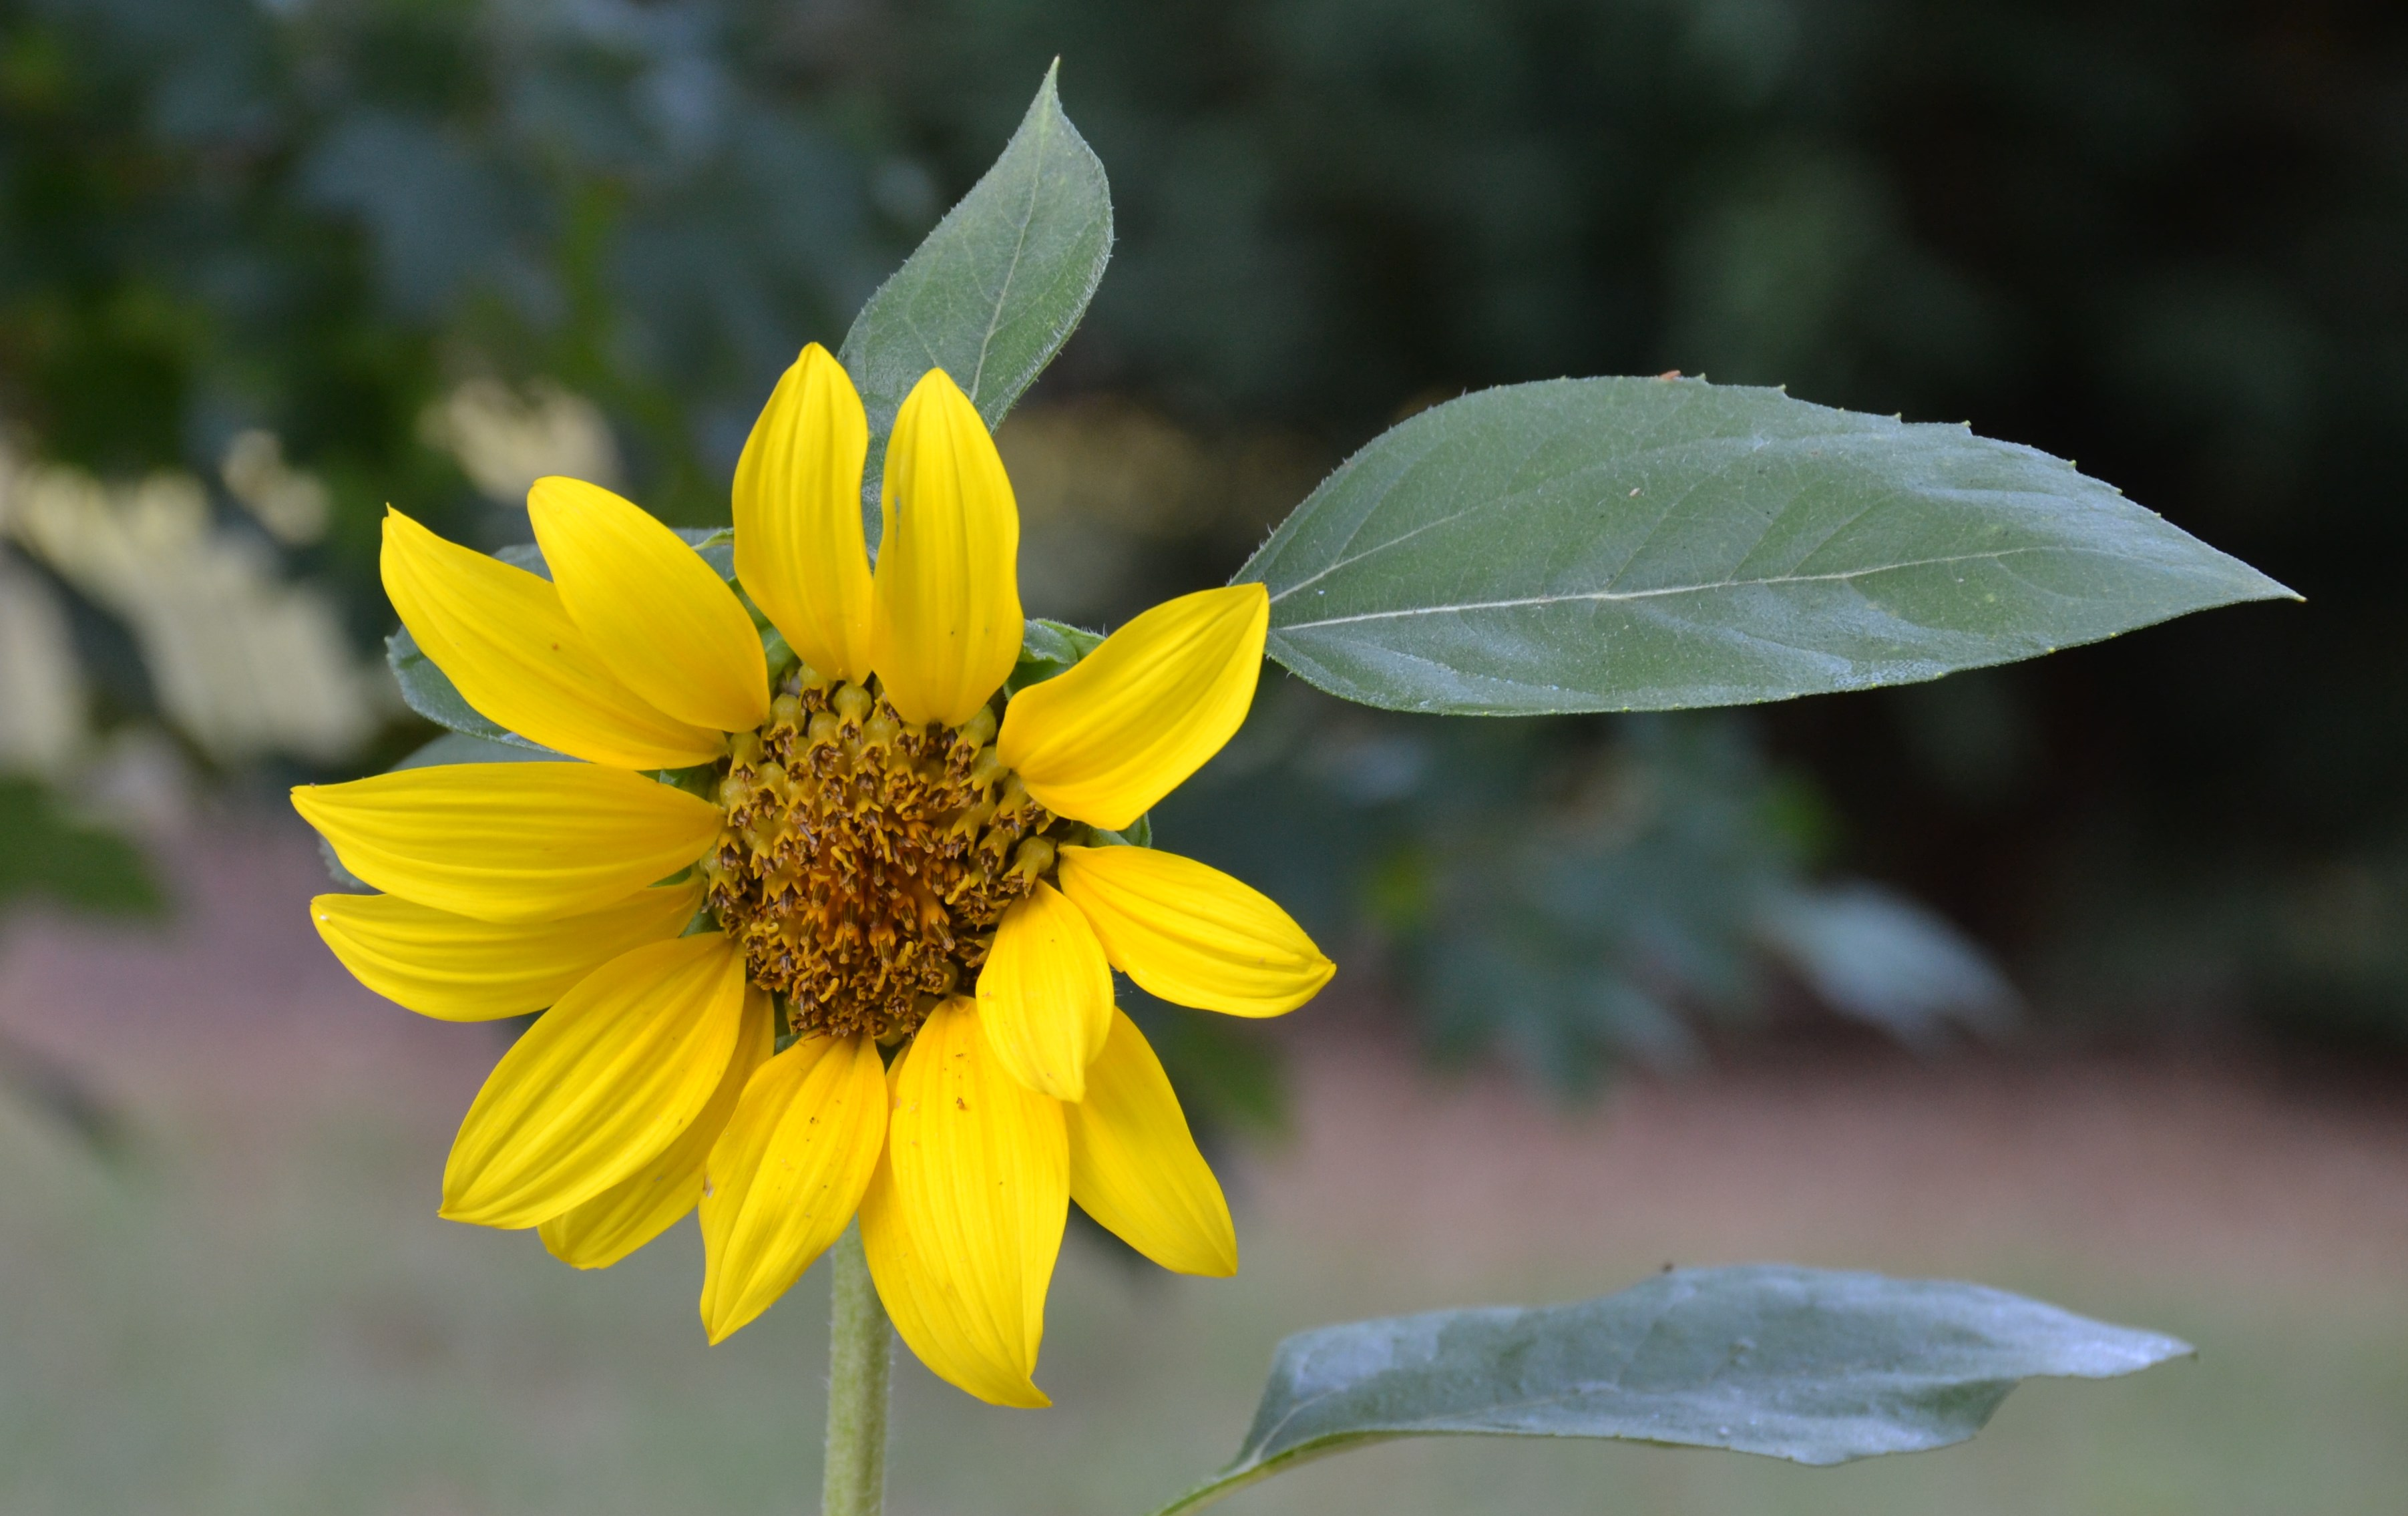 This Is The First Sunflower Of The Year In Our Garden. Apparently The Birds  Missed This Seed That Fell From The Feeder.